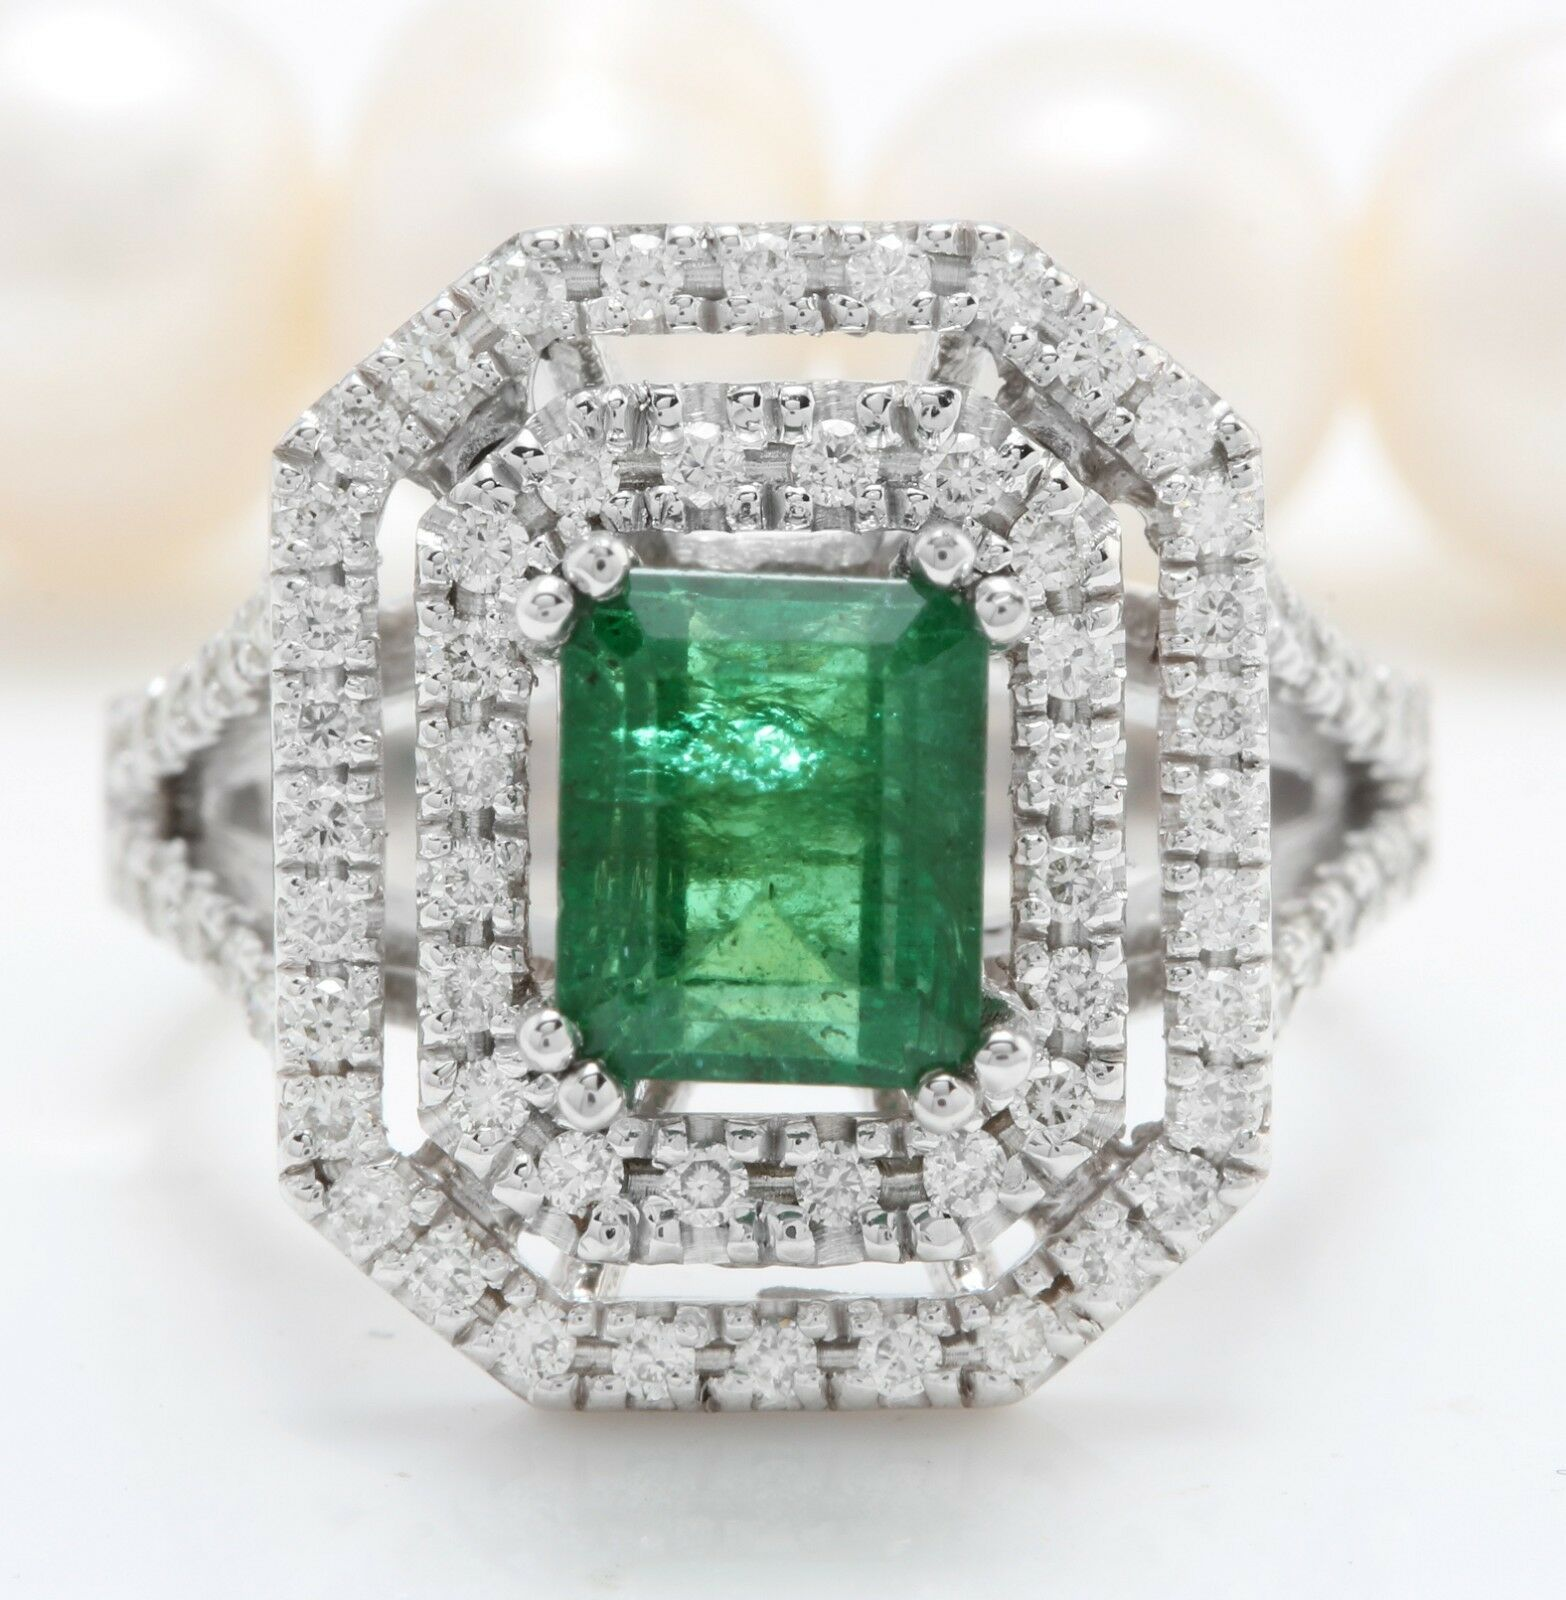 d172959c9373e in Diamonds and Emerald Natural 3.50 14K Carat Ring Women's gold ...